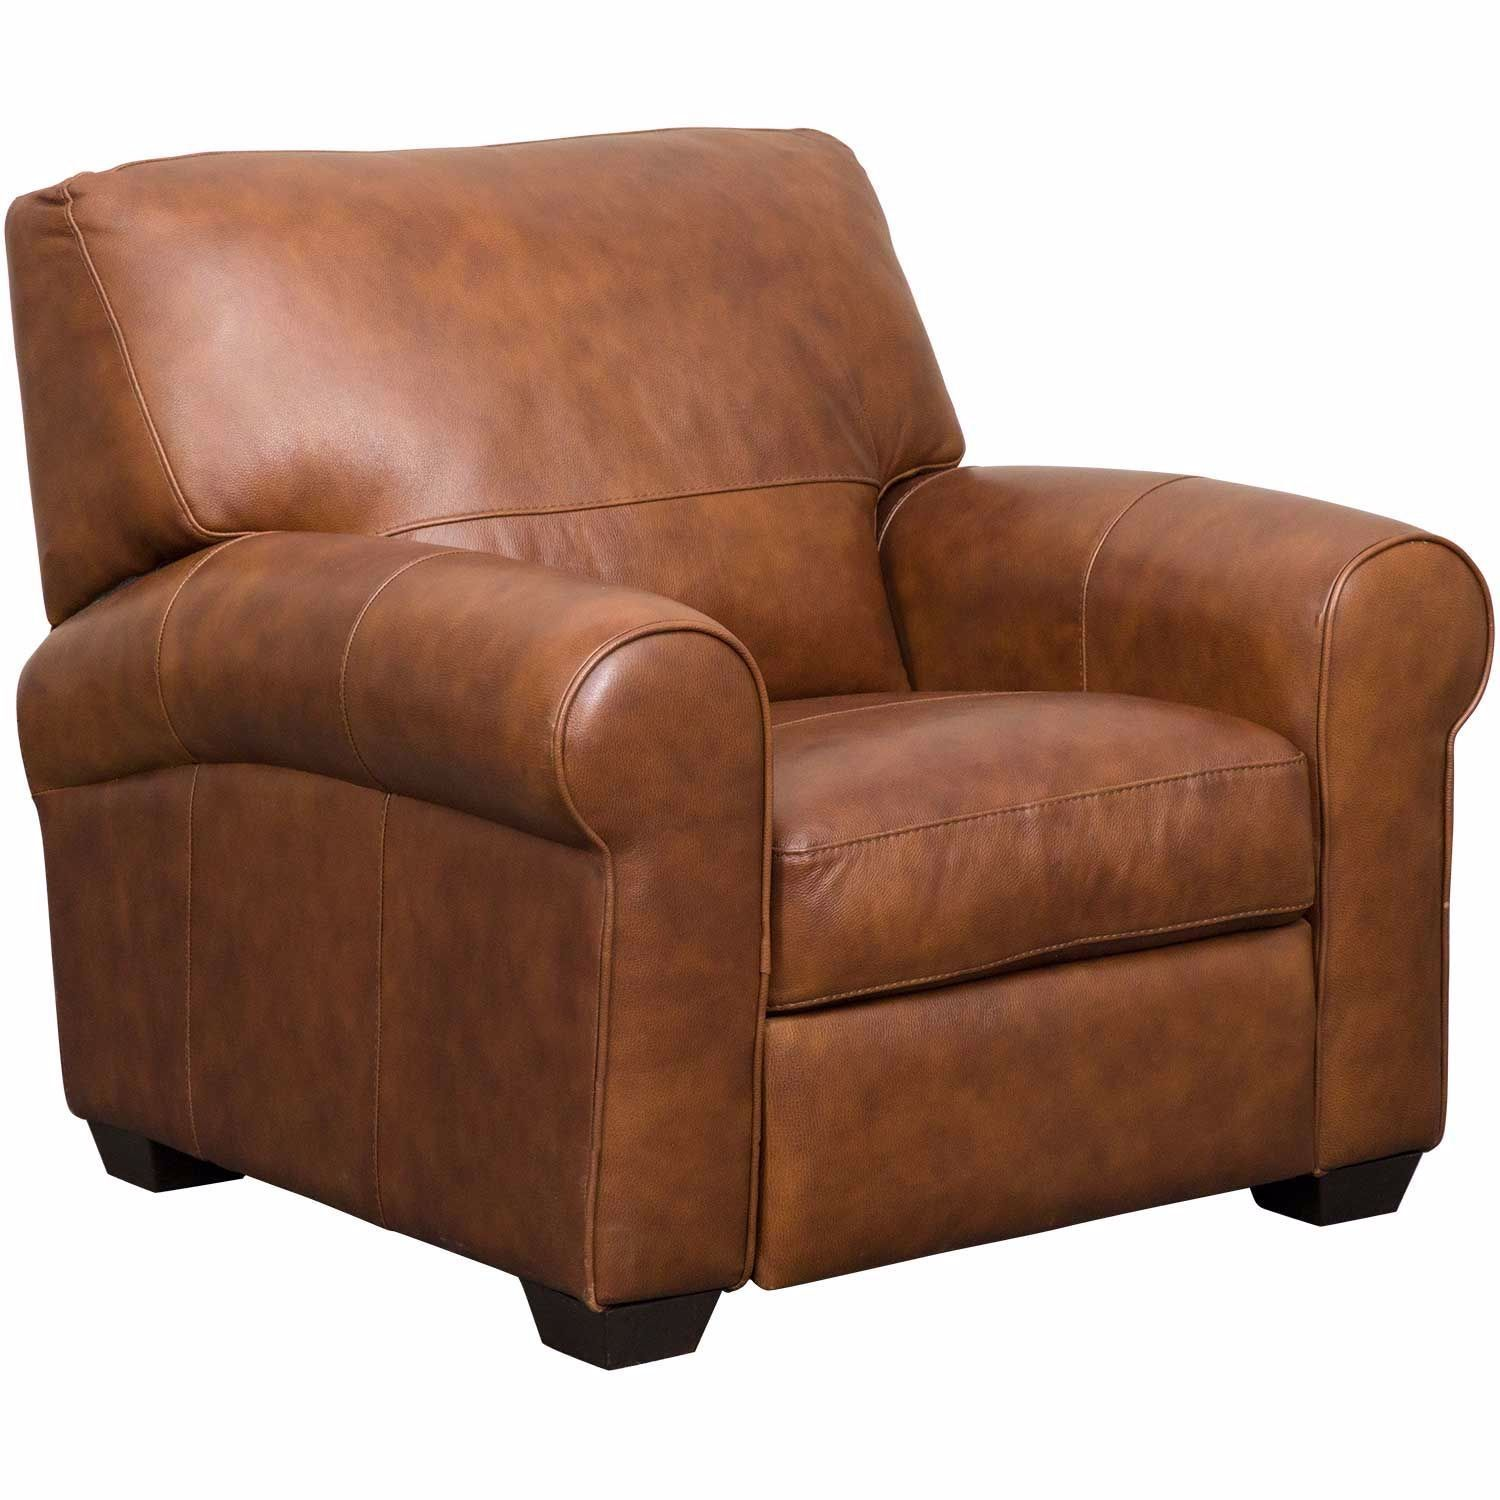 Whisky Italian All Leather Recliner In 2020 Leather Chair Brown Leather Sofa Living Room Brown Leather Chairs